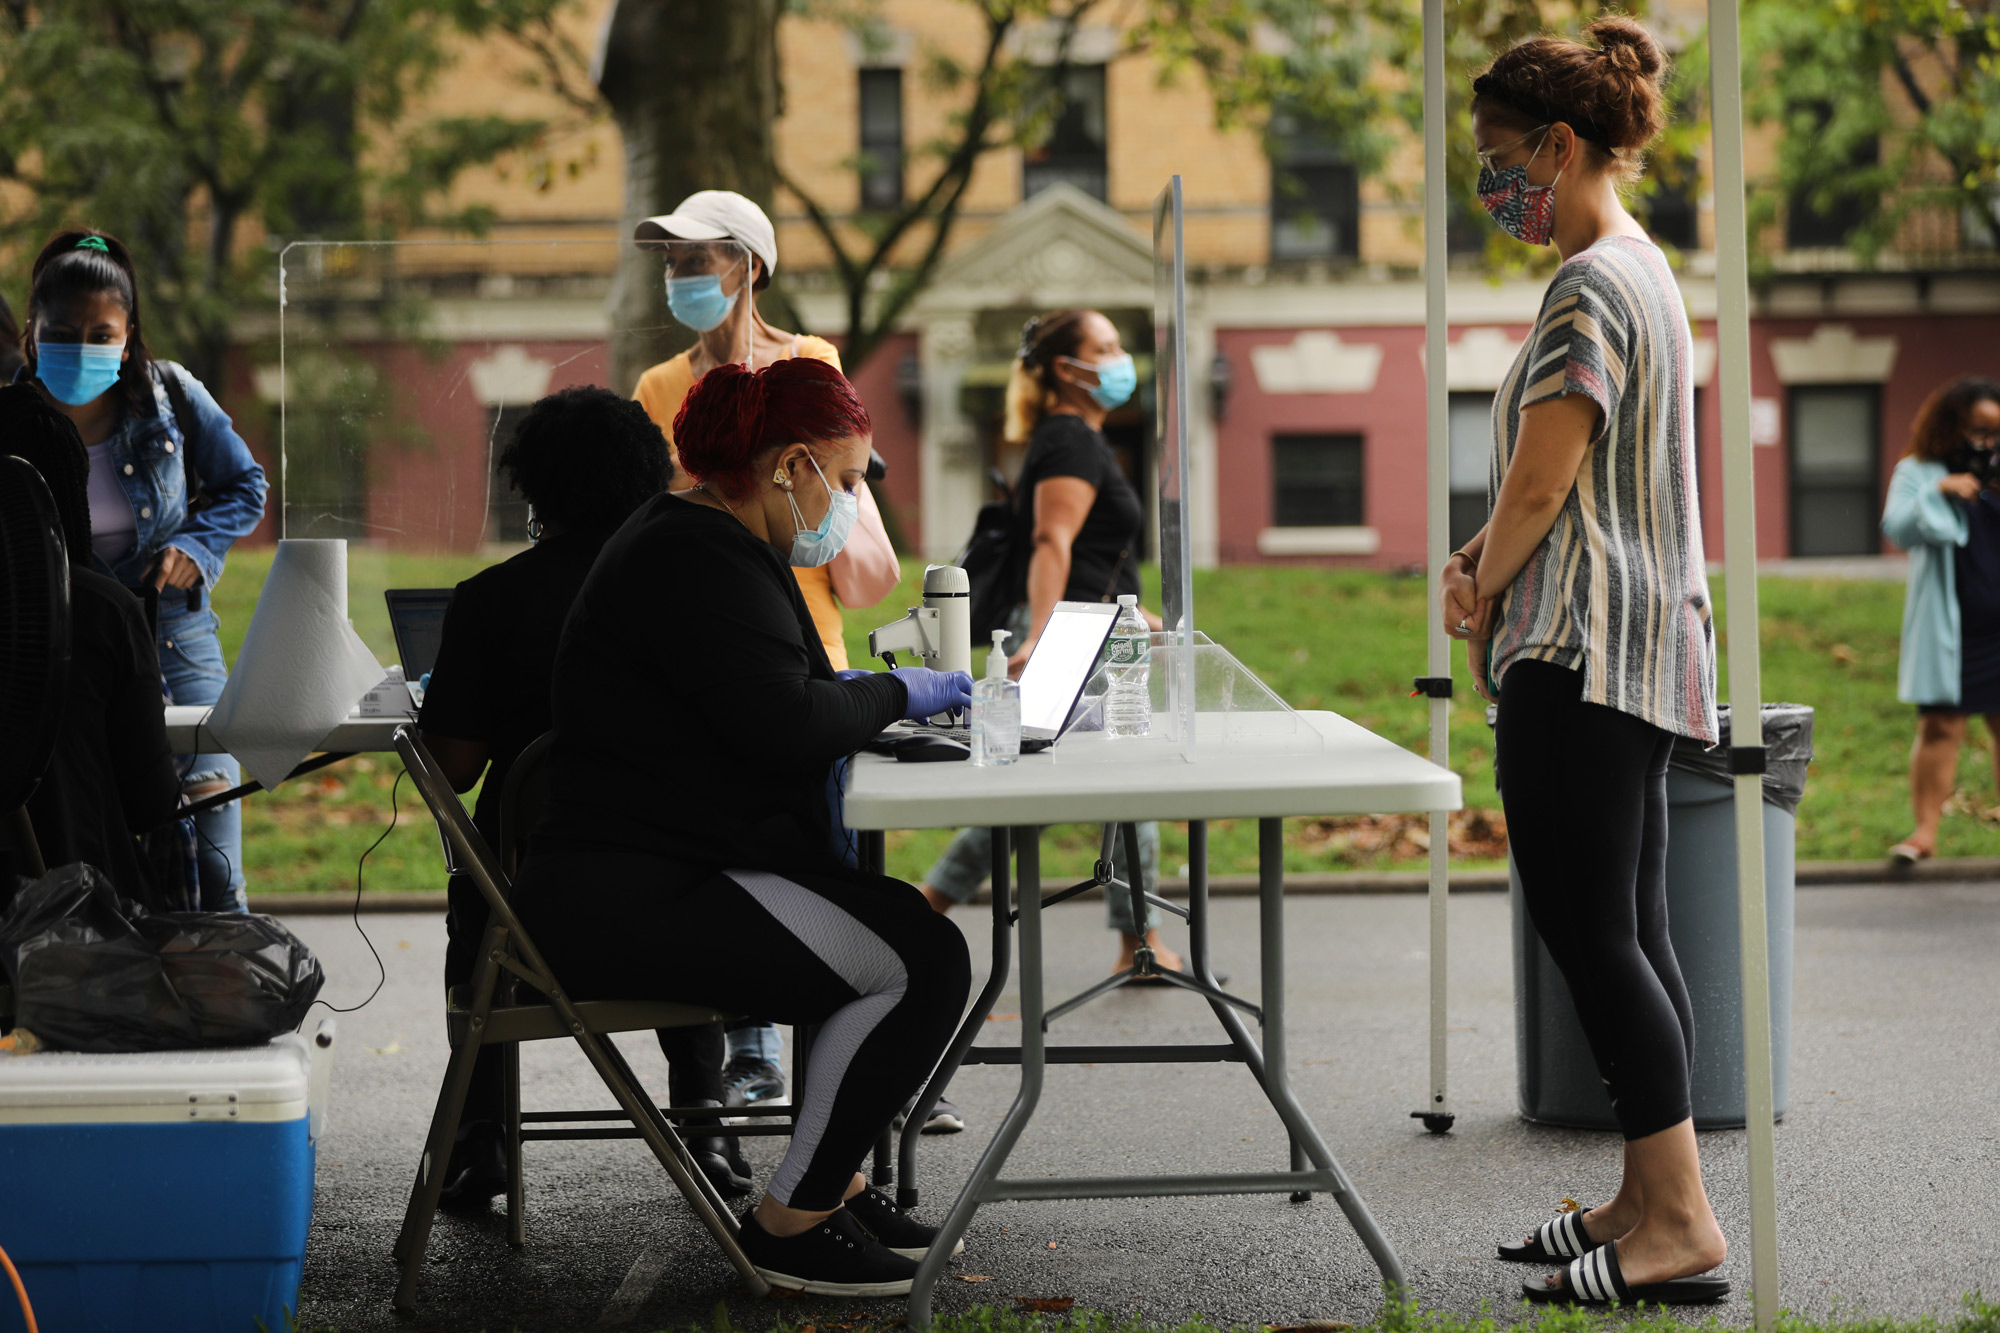 People line-up to take a Covid-19 test in the Sunset Park neighborhood on August 13 in New York City.